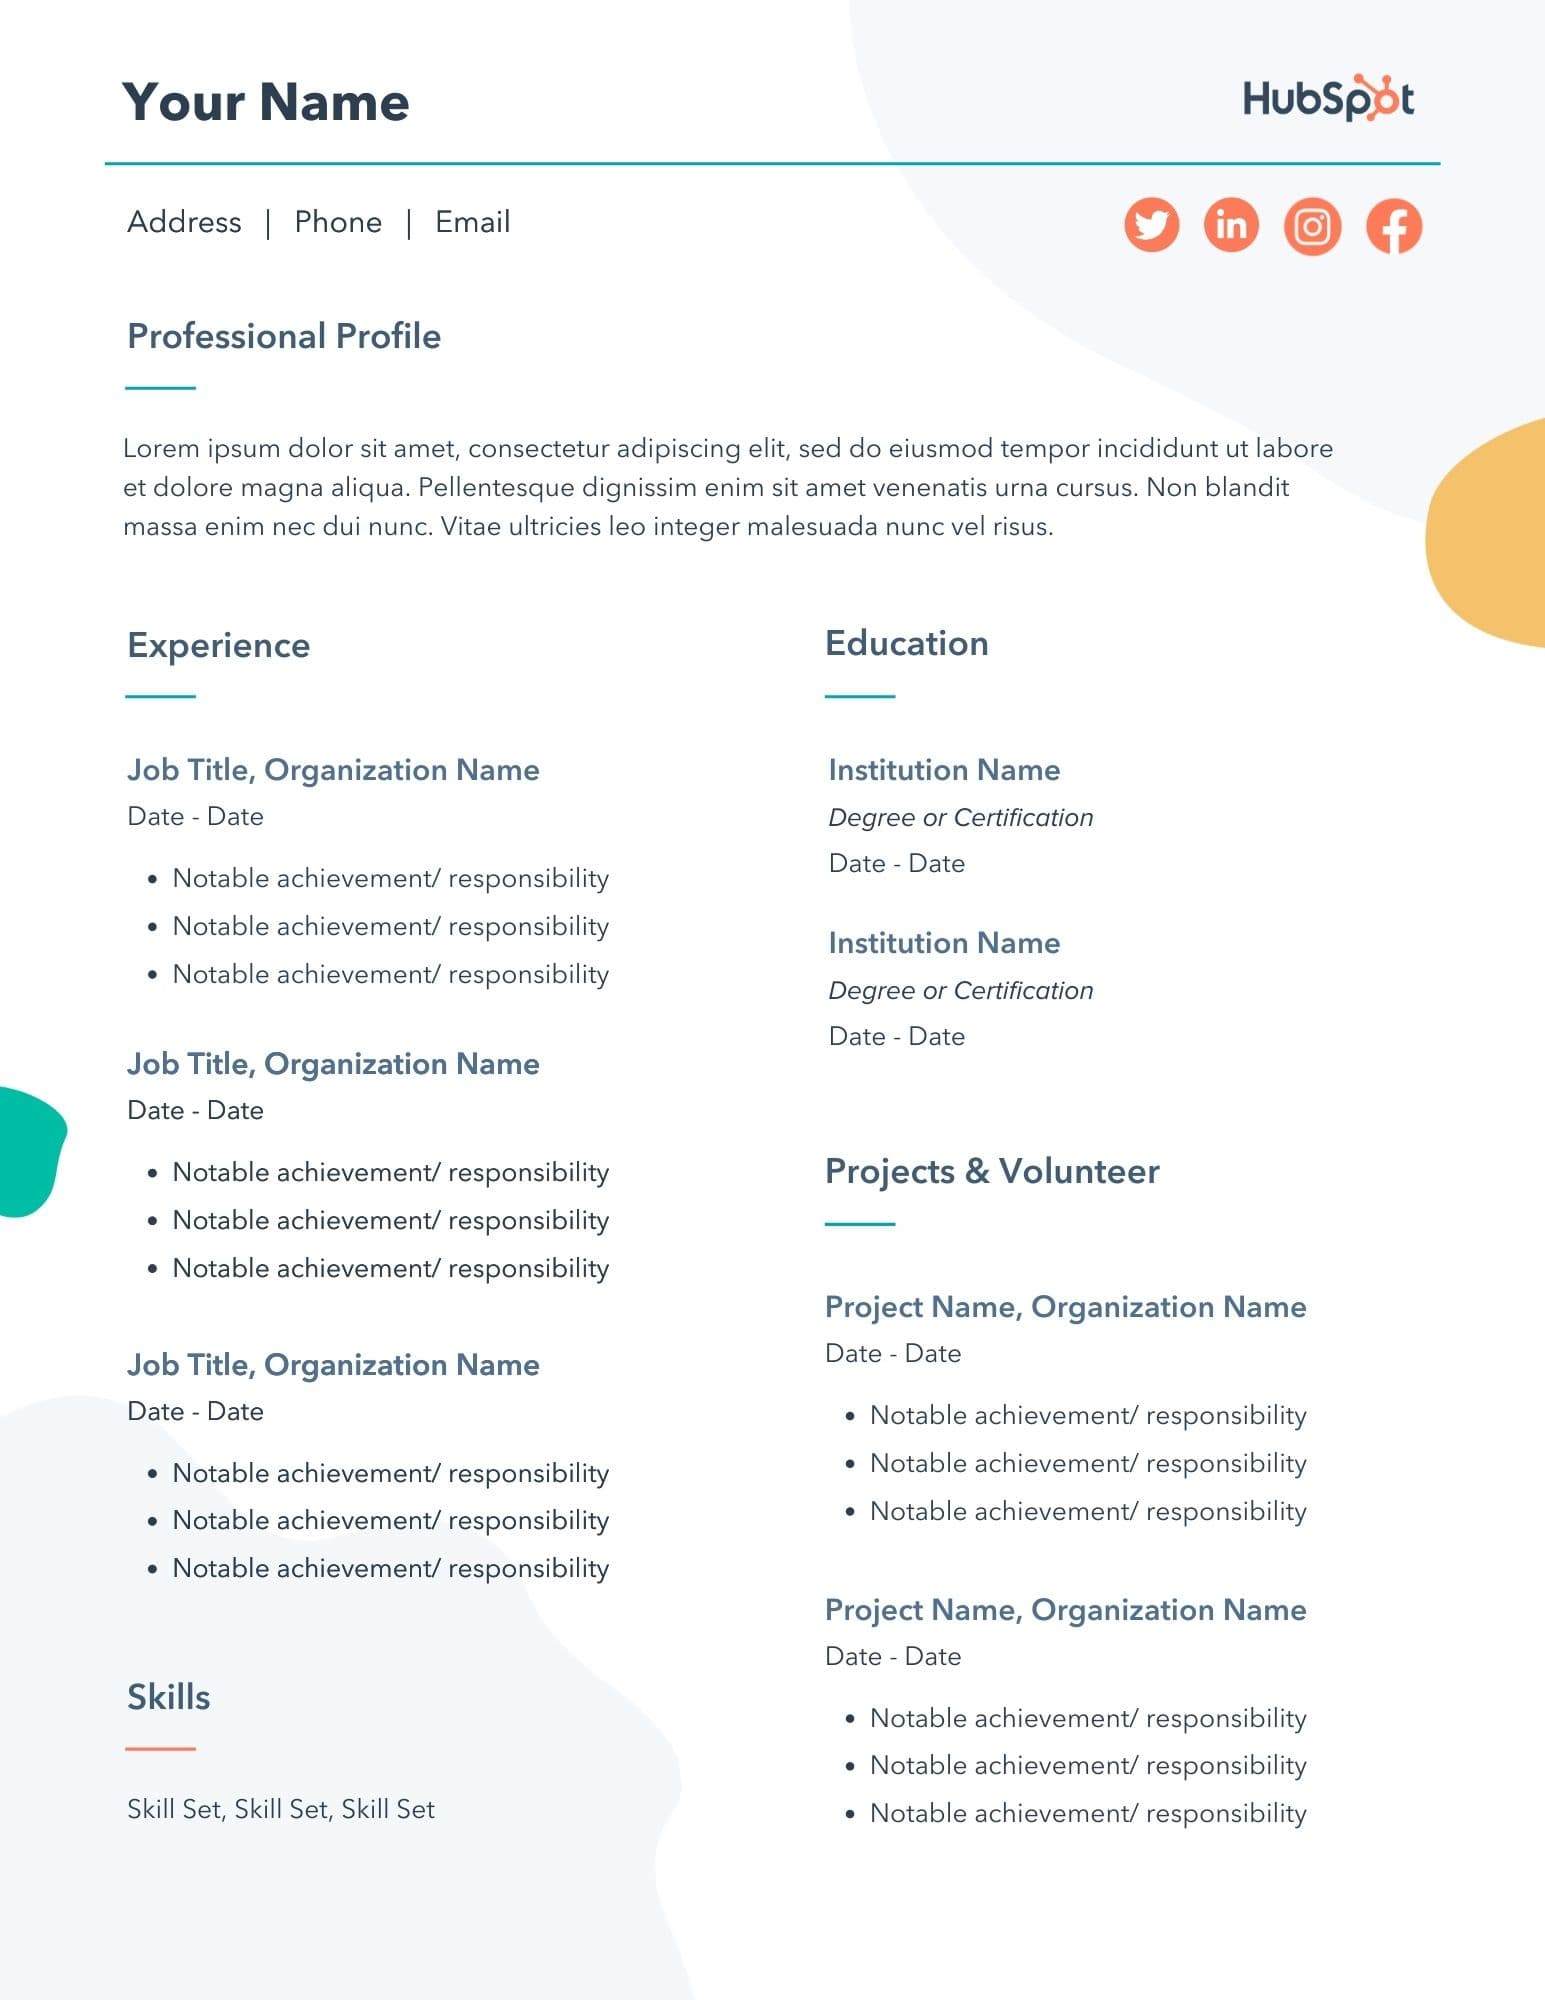 free resume templates for microsoft word to make your own editable template pca review Resume Free Resume Templates Editable